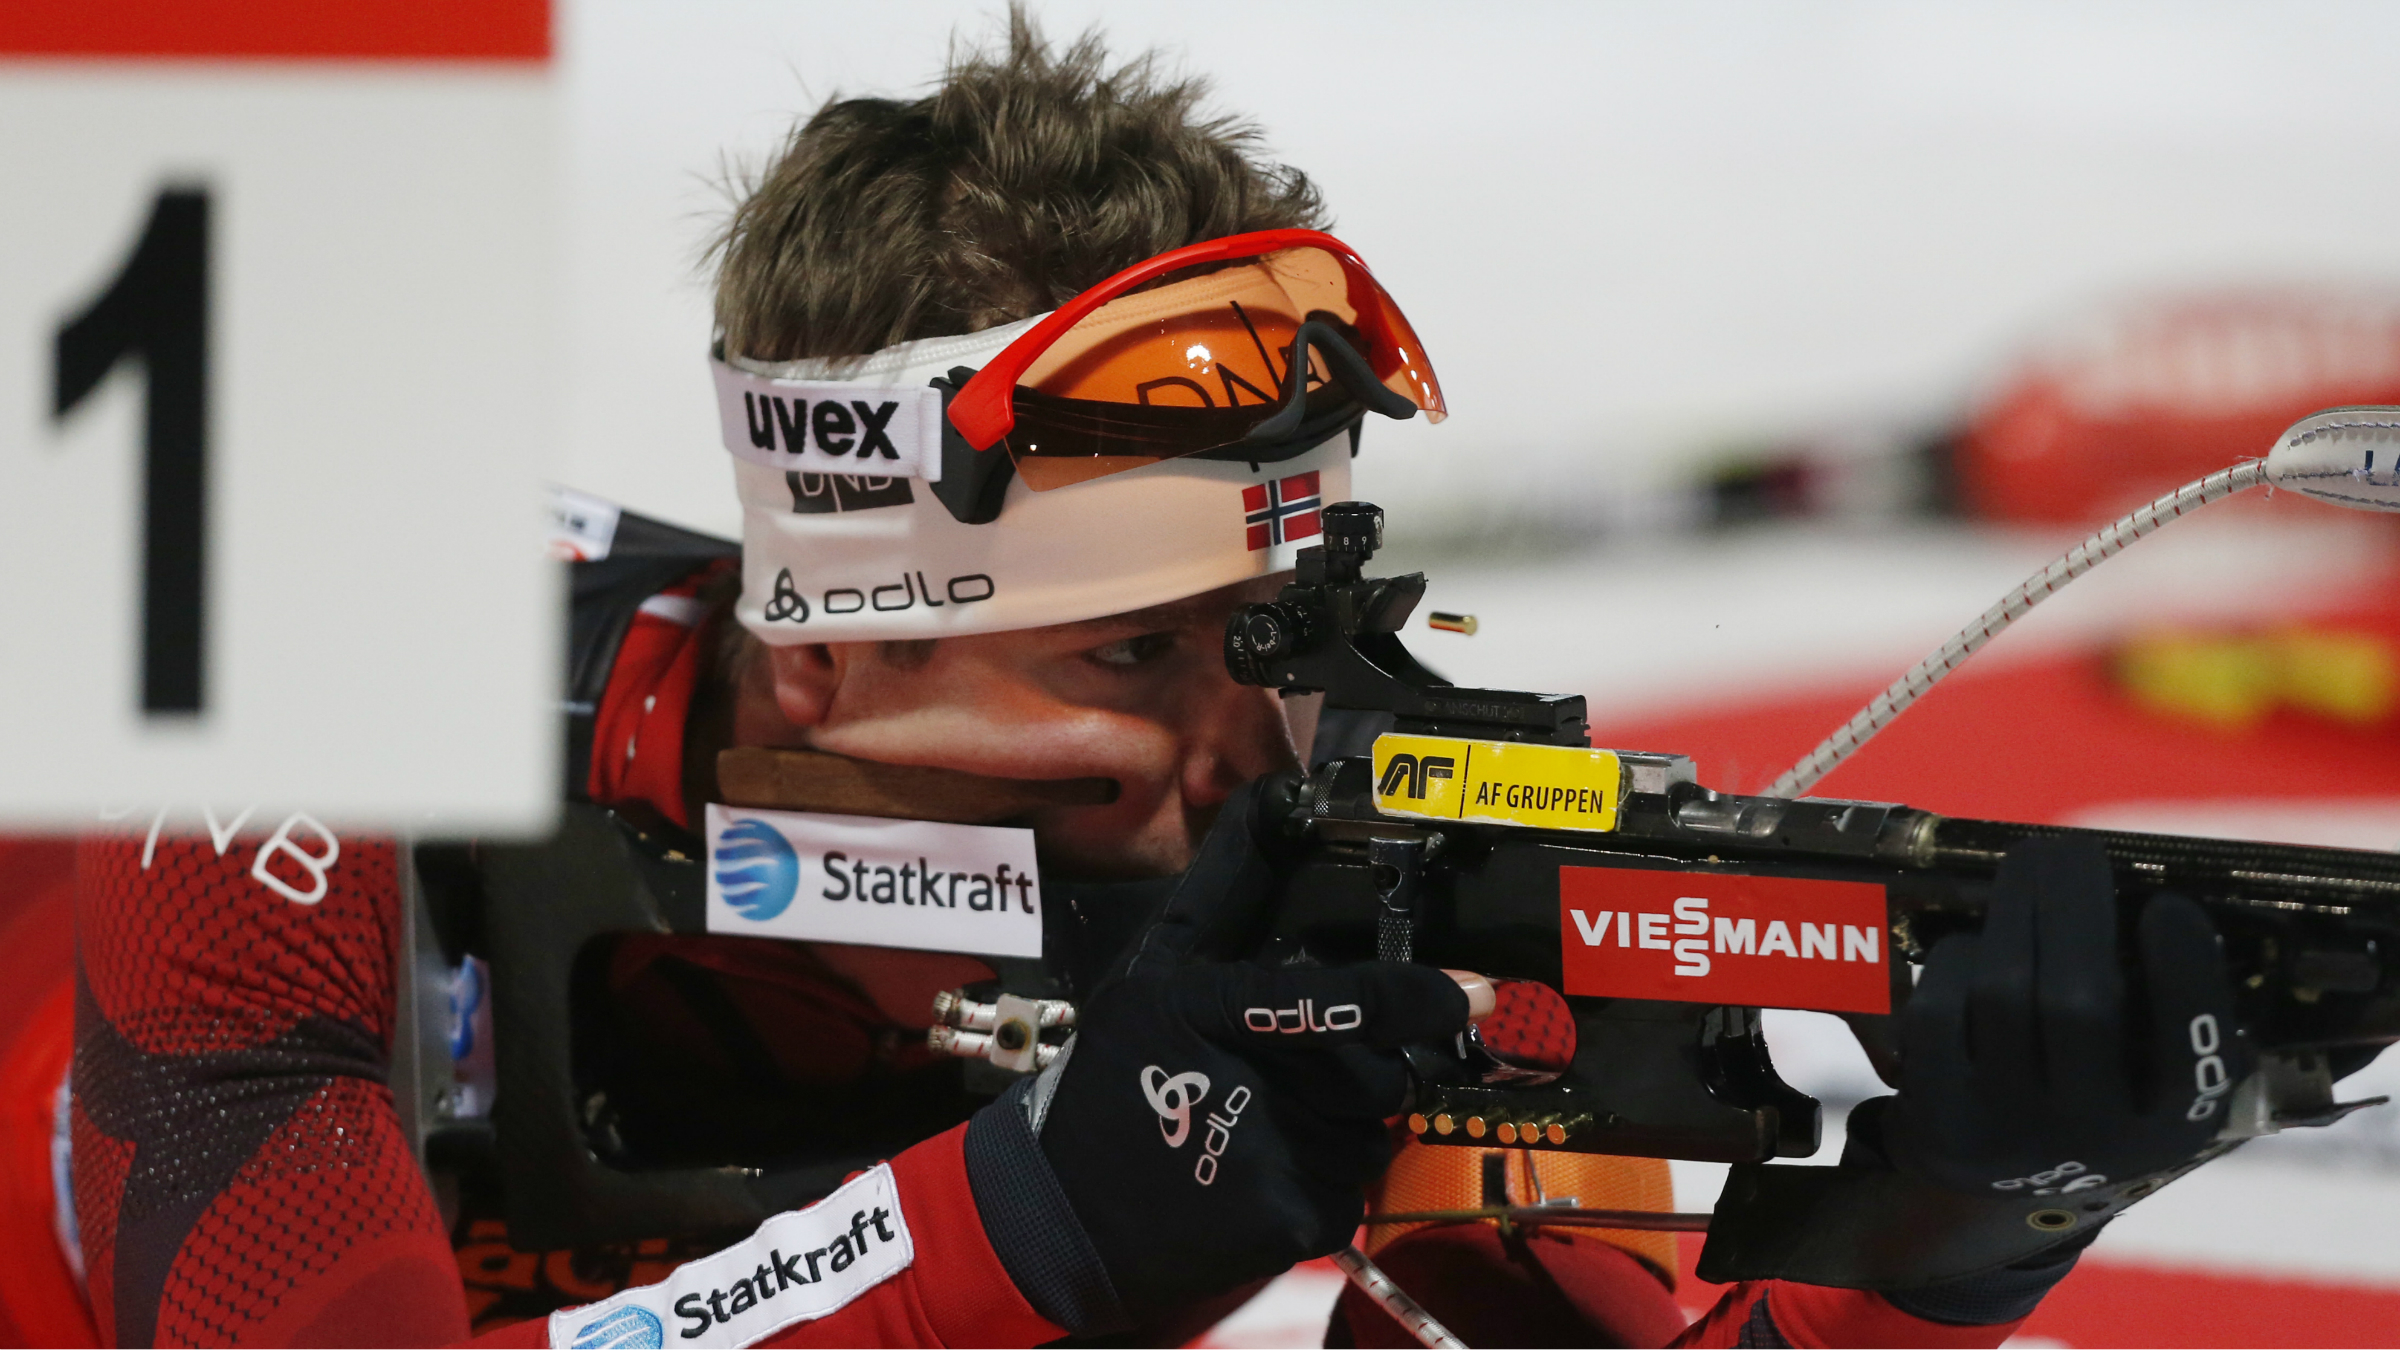 Emil Hegle Svendsen from Norway competes during the 2x6km + 2x7.5km mixed relay at the Biathlon World Championship in Nove Mesto